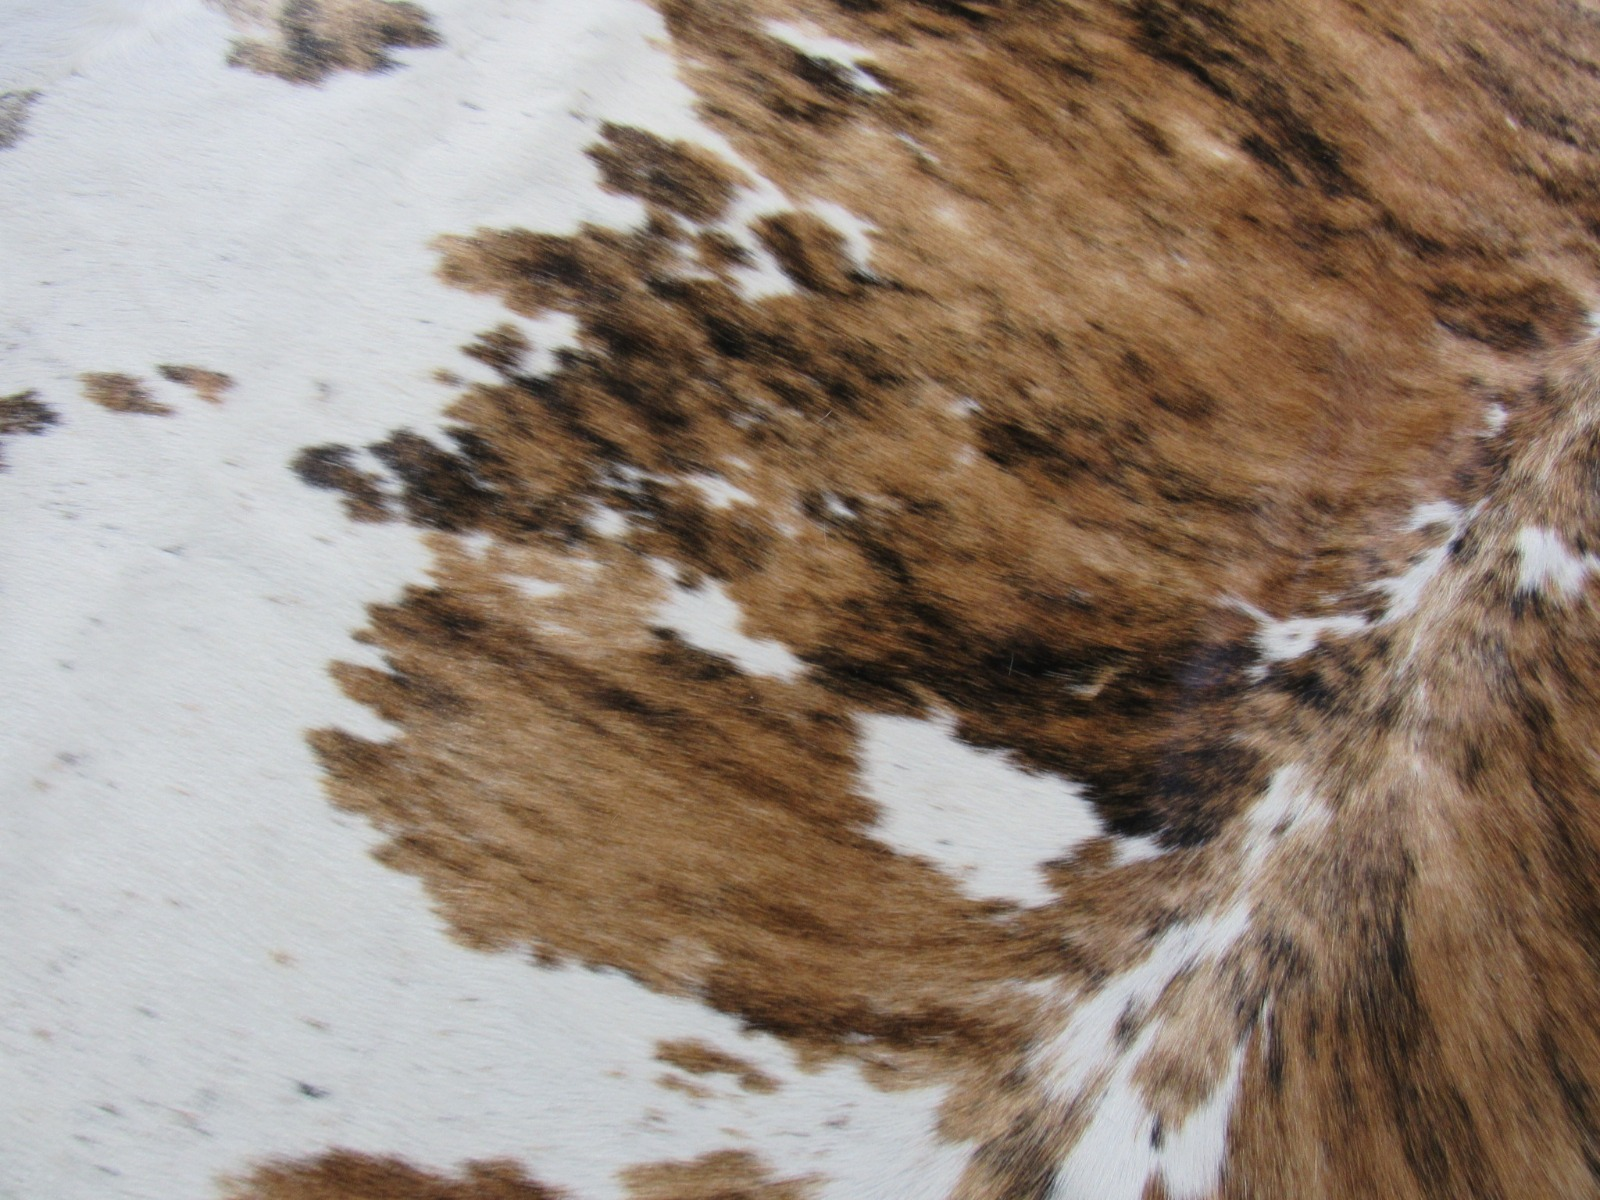 A-1271 Tricolor Speckled Cowhide Rug Size: 7 1/4' X 7 1/4'